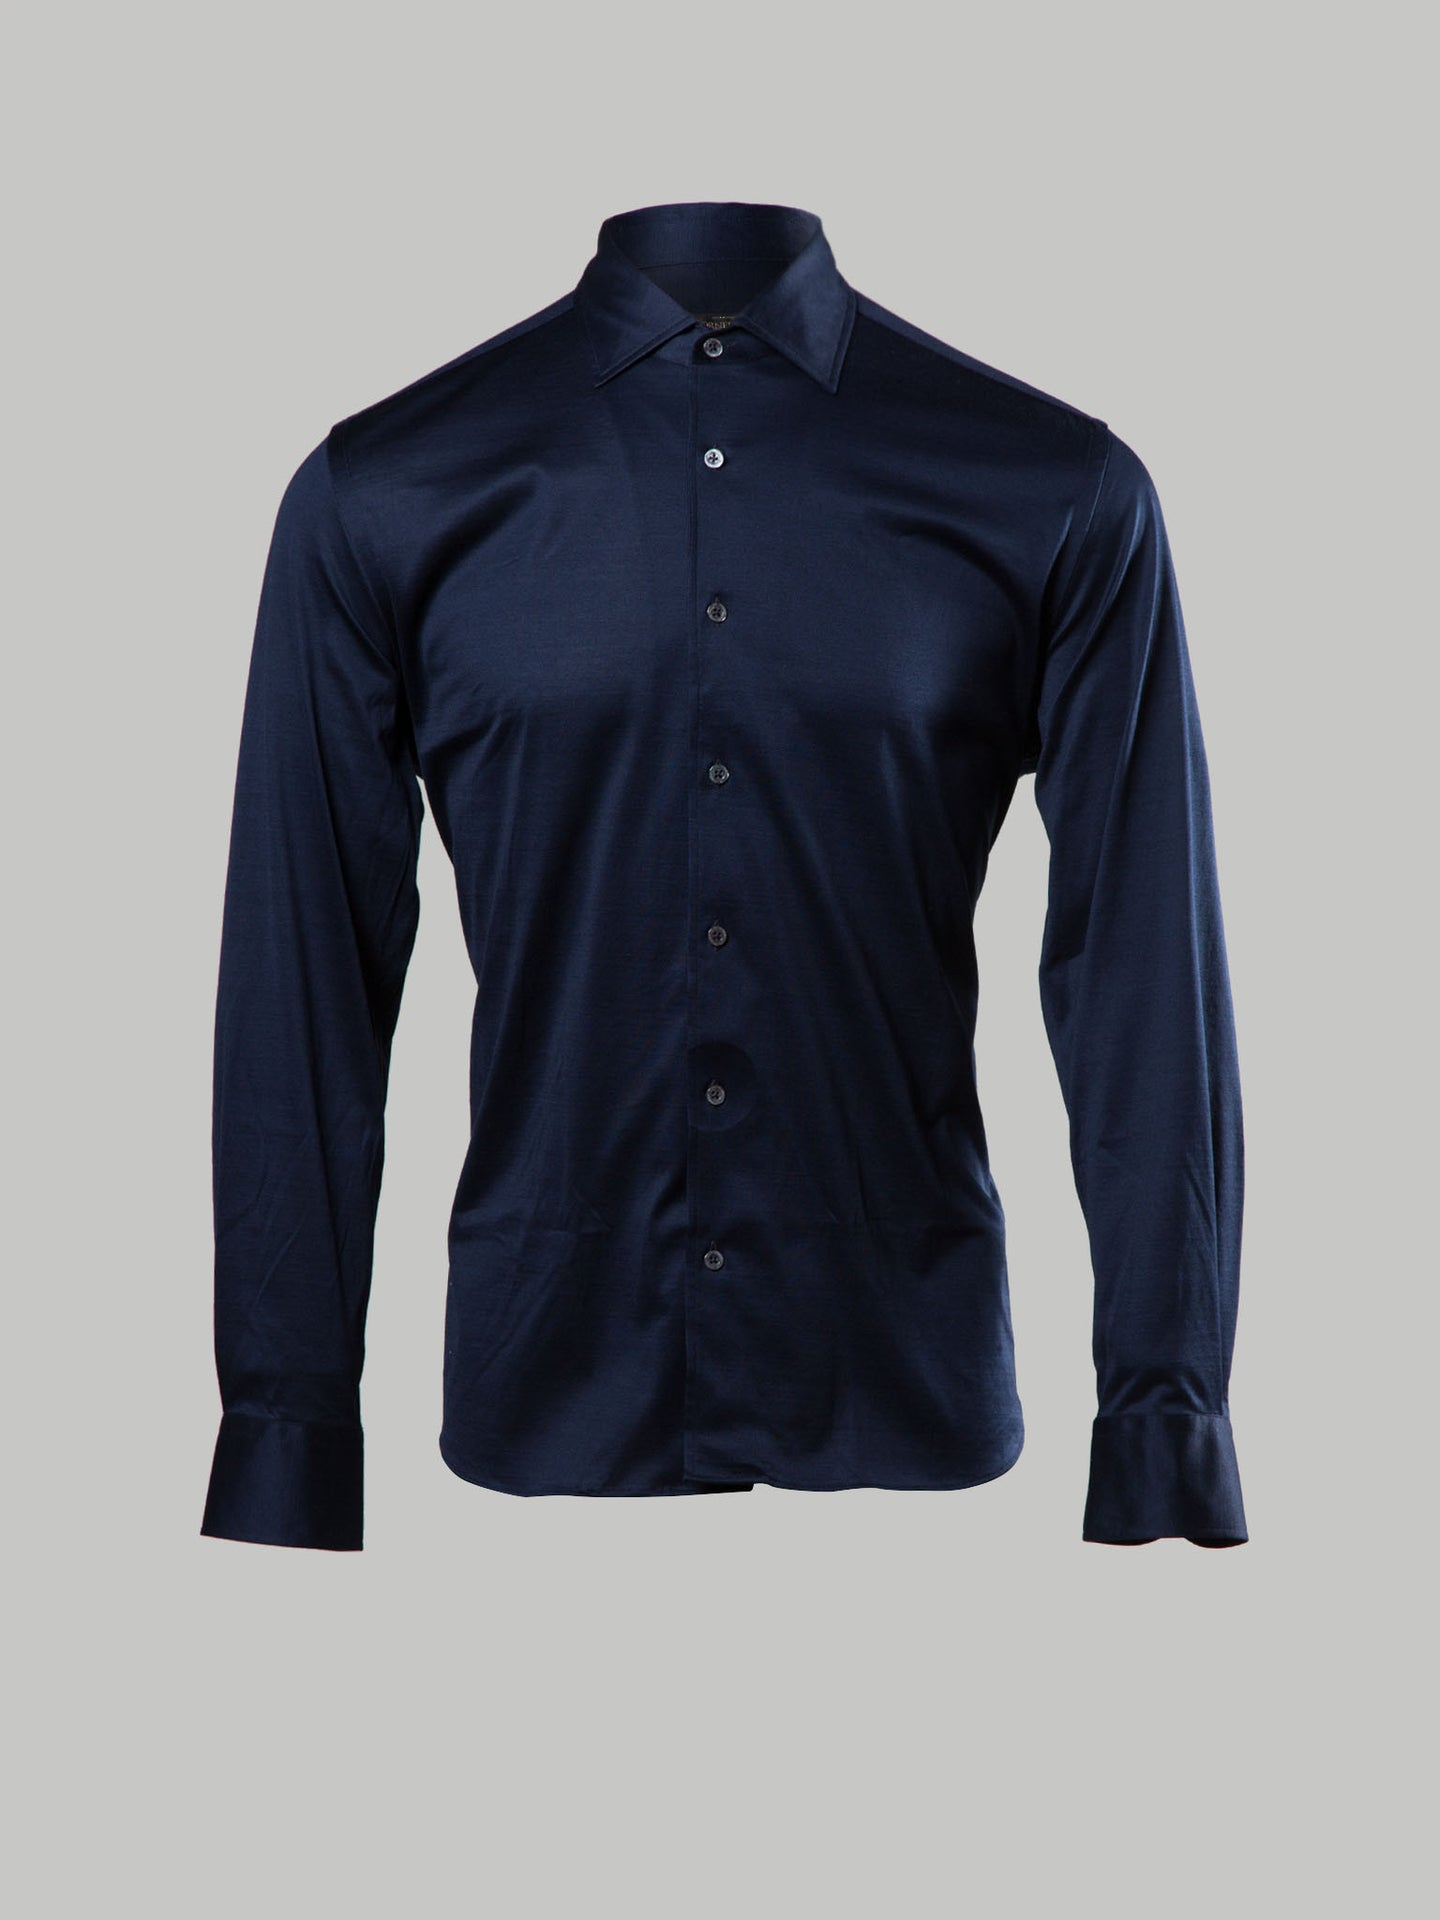 Corneliani Cut Away Collar (Navy) - Union 22